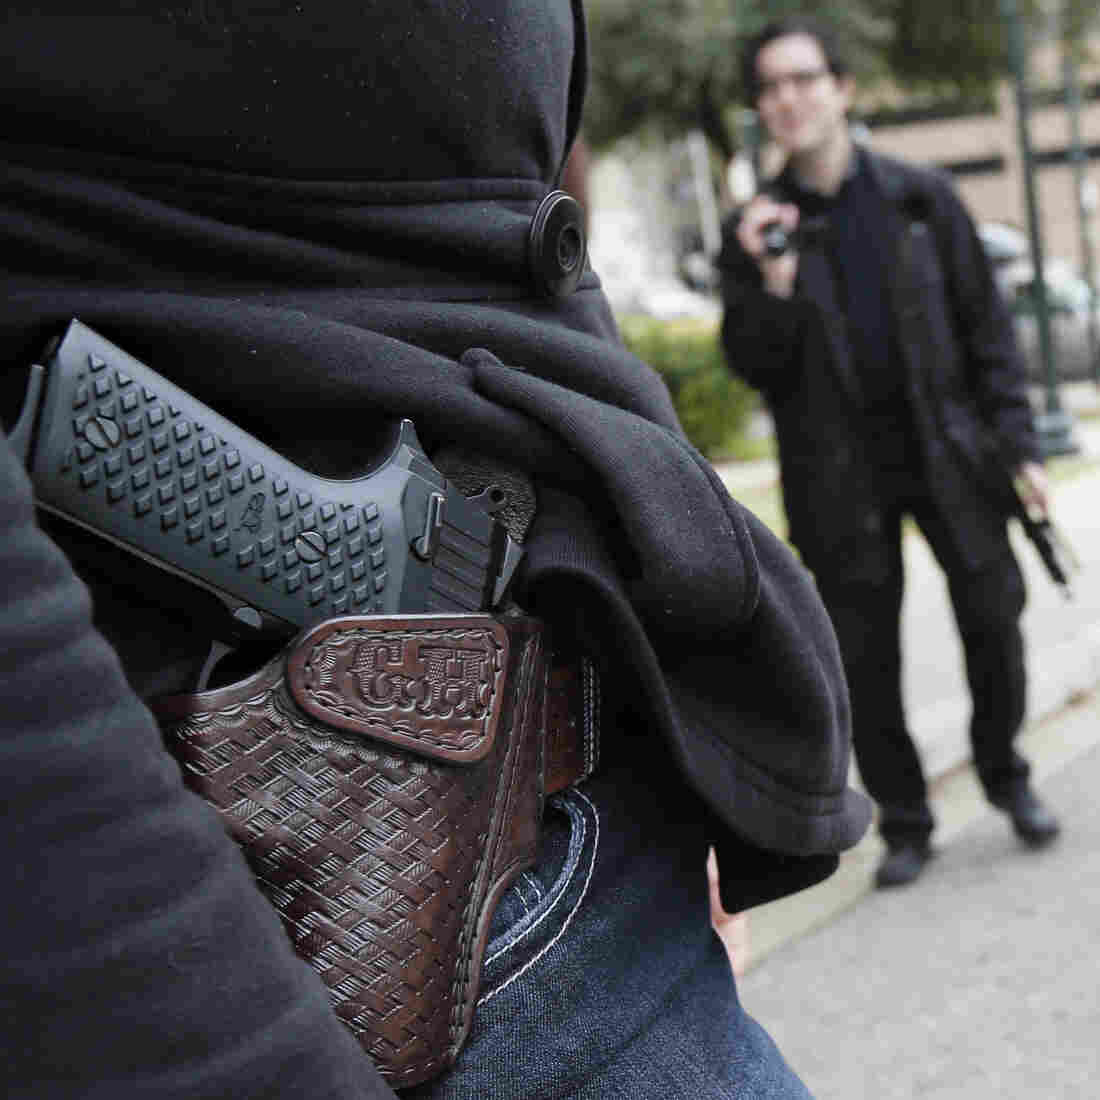 Texas' New Open-Carry Law Unpopular Among Some Gun Owners